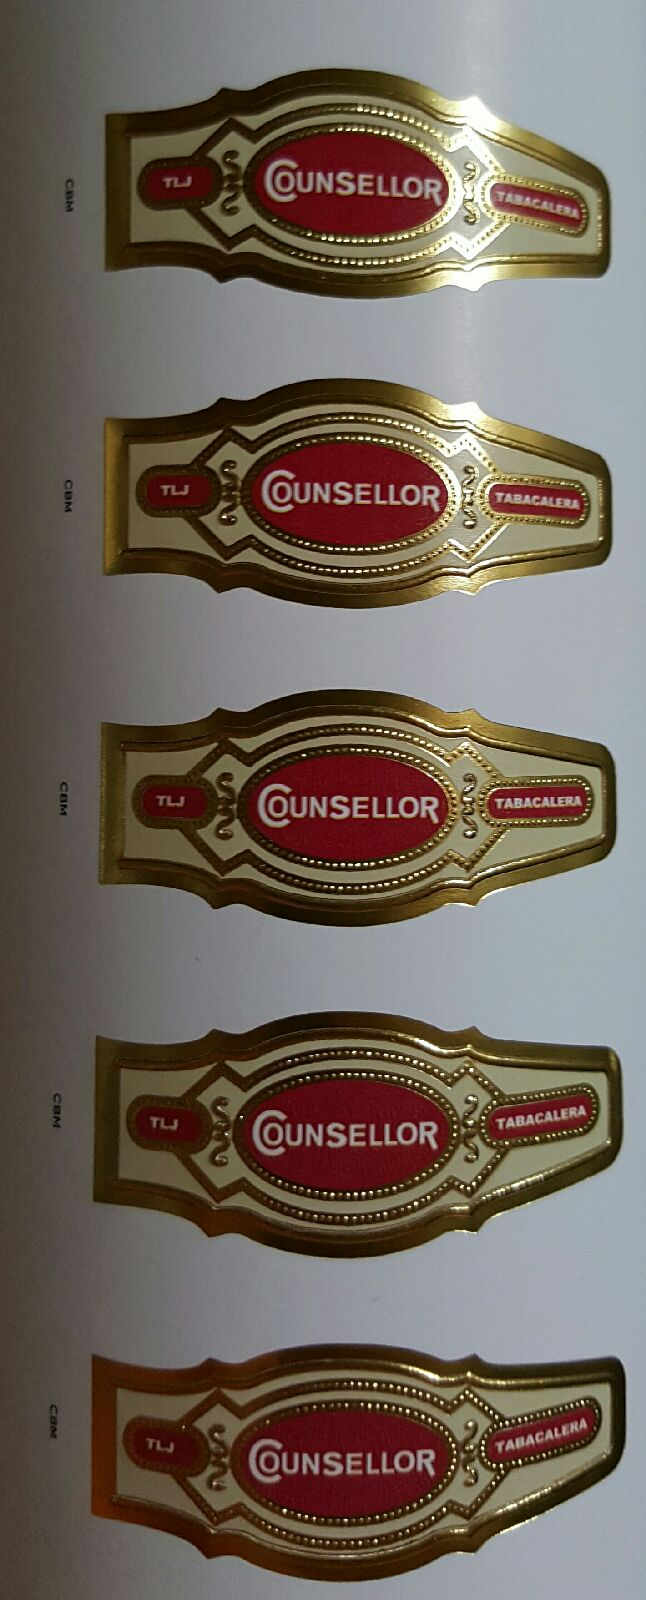 Counsellor Cigar Bands